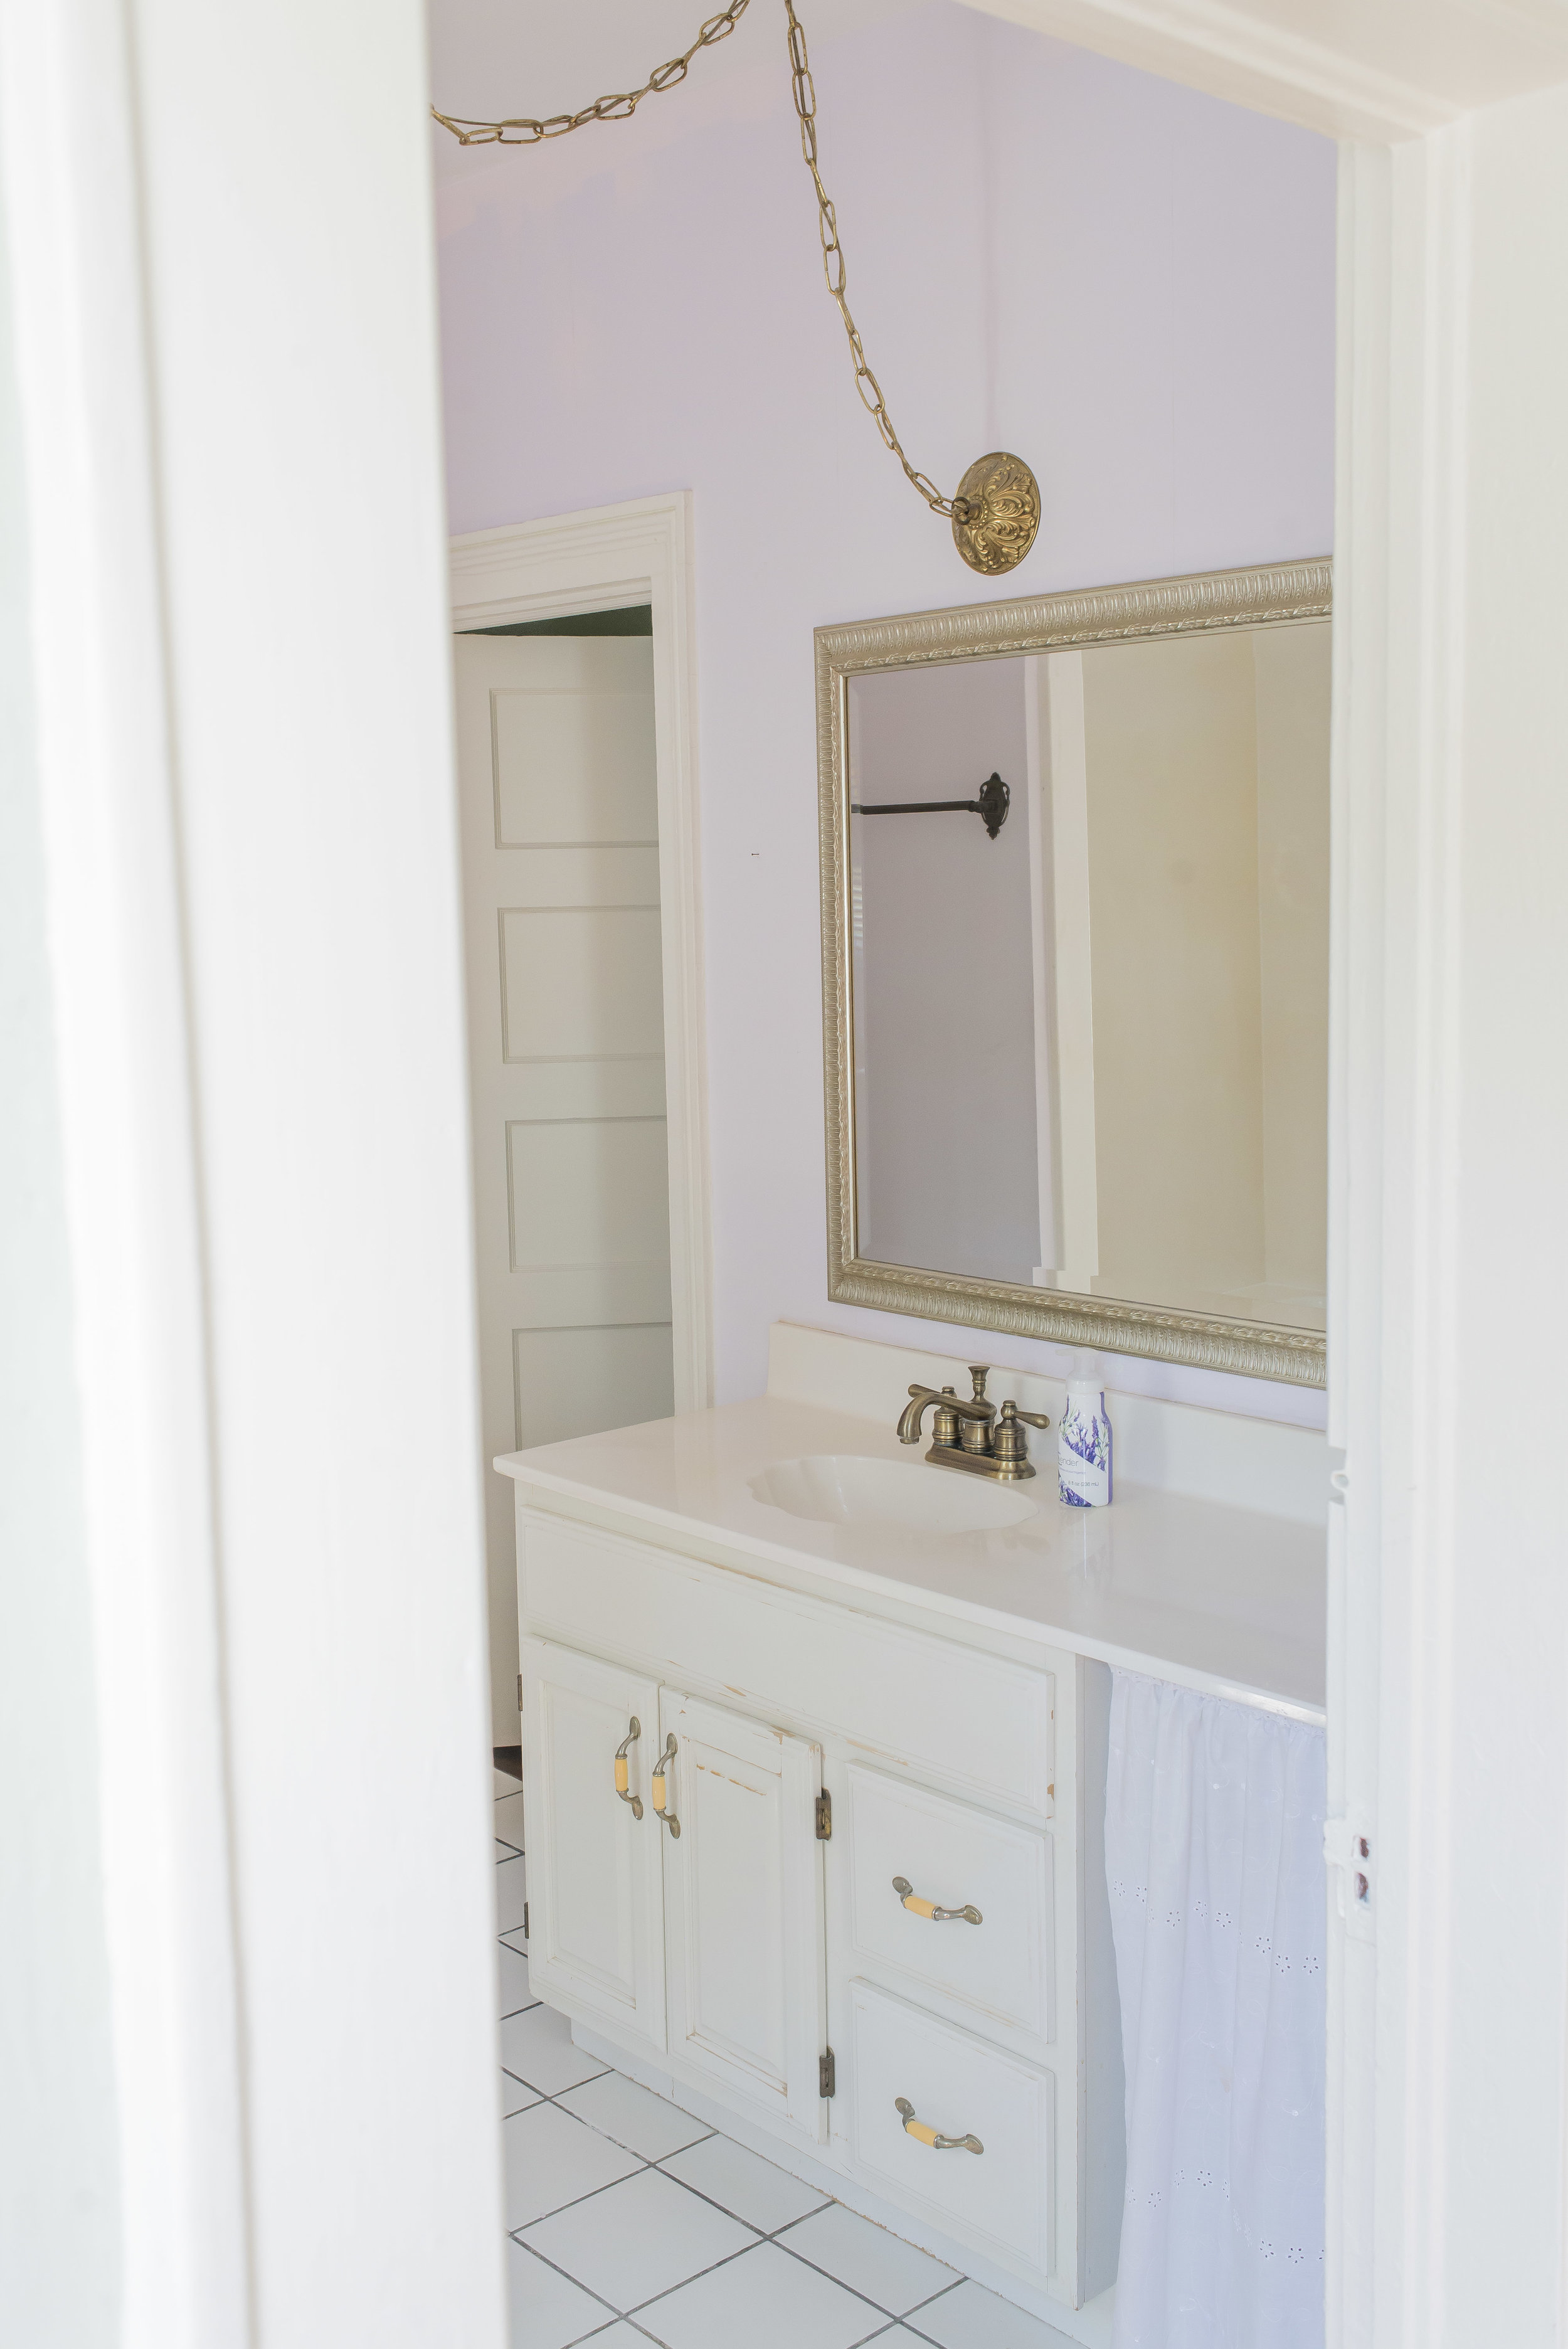 The master bathroom left much to be desired in that I'm sure upgrades hadn't been made to it in decades. But once the old was removed, it was a beautiful canvas to bring our master bathroom dreams to life.